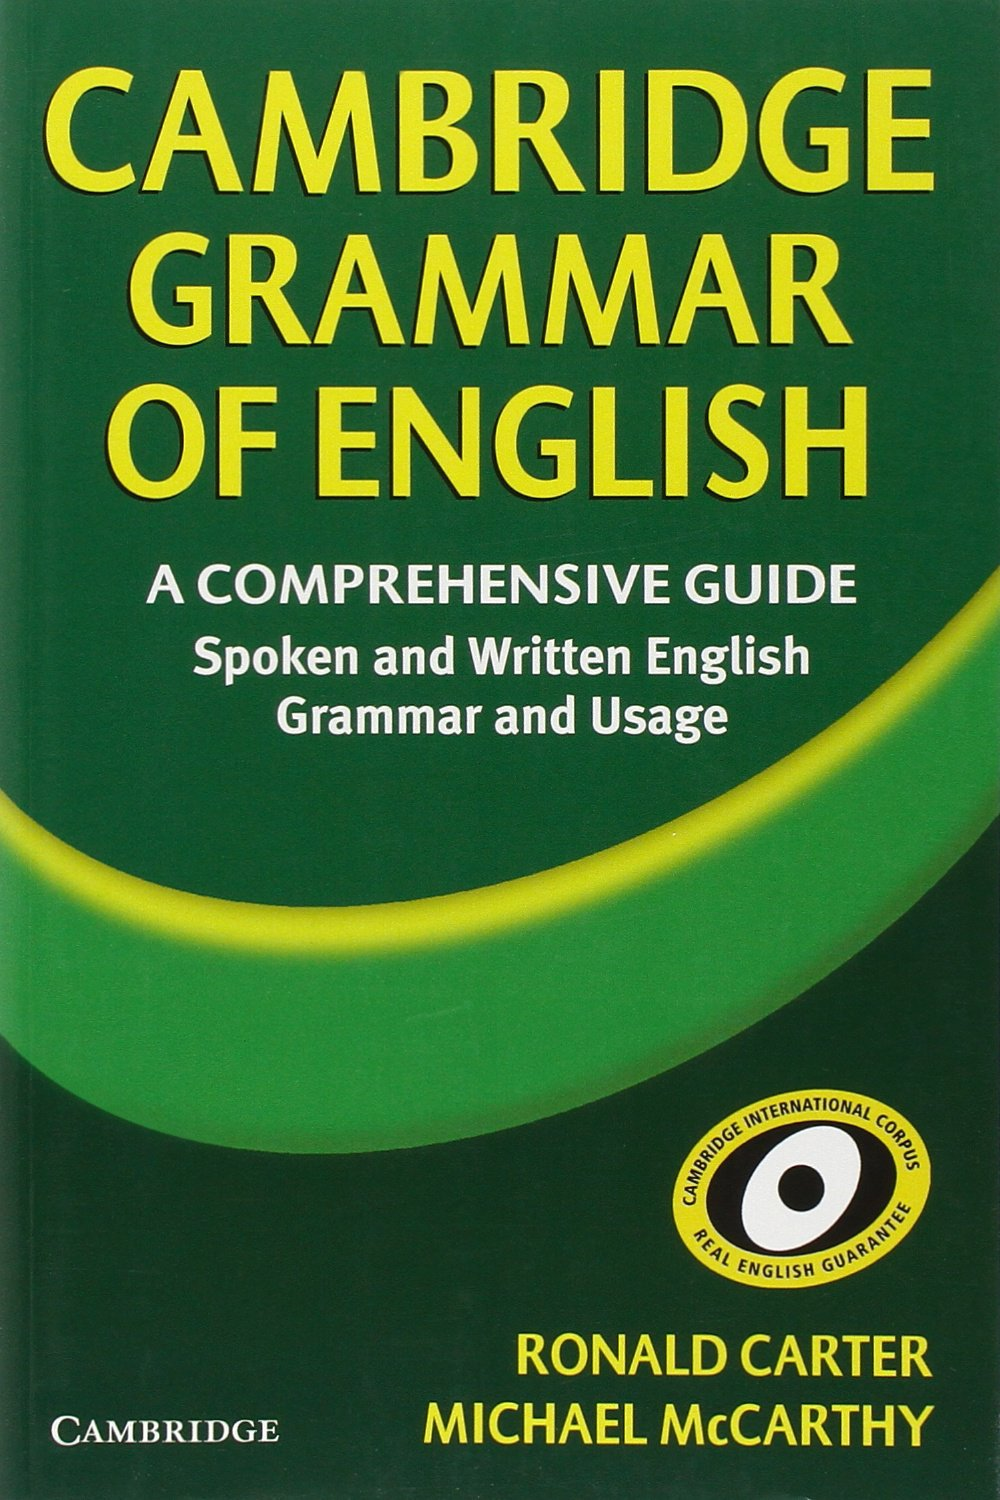 Cambridge grammar of english a comprehensive guide amazon cambridge grammar of english a comprehensive guide amazon ronald carter michael mccarthy 9780521588461 books fandeluxe Images